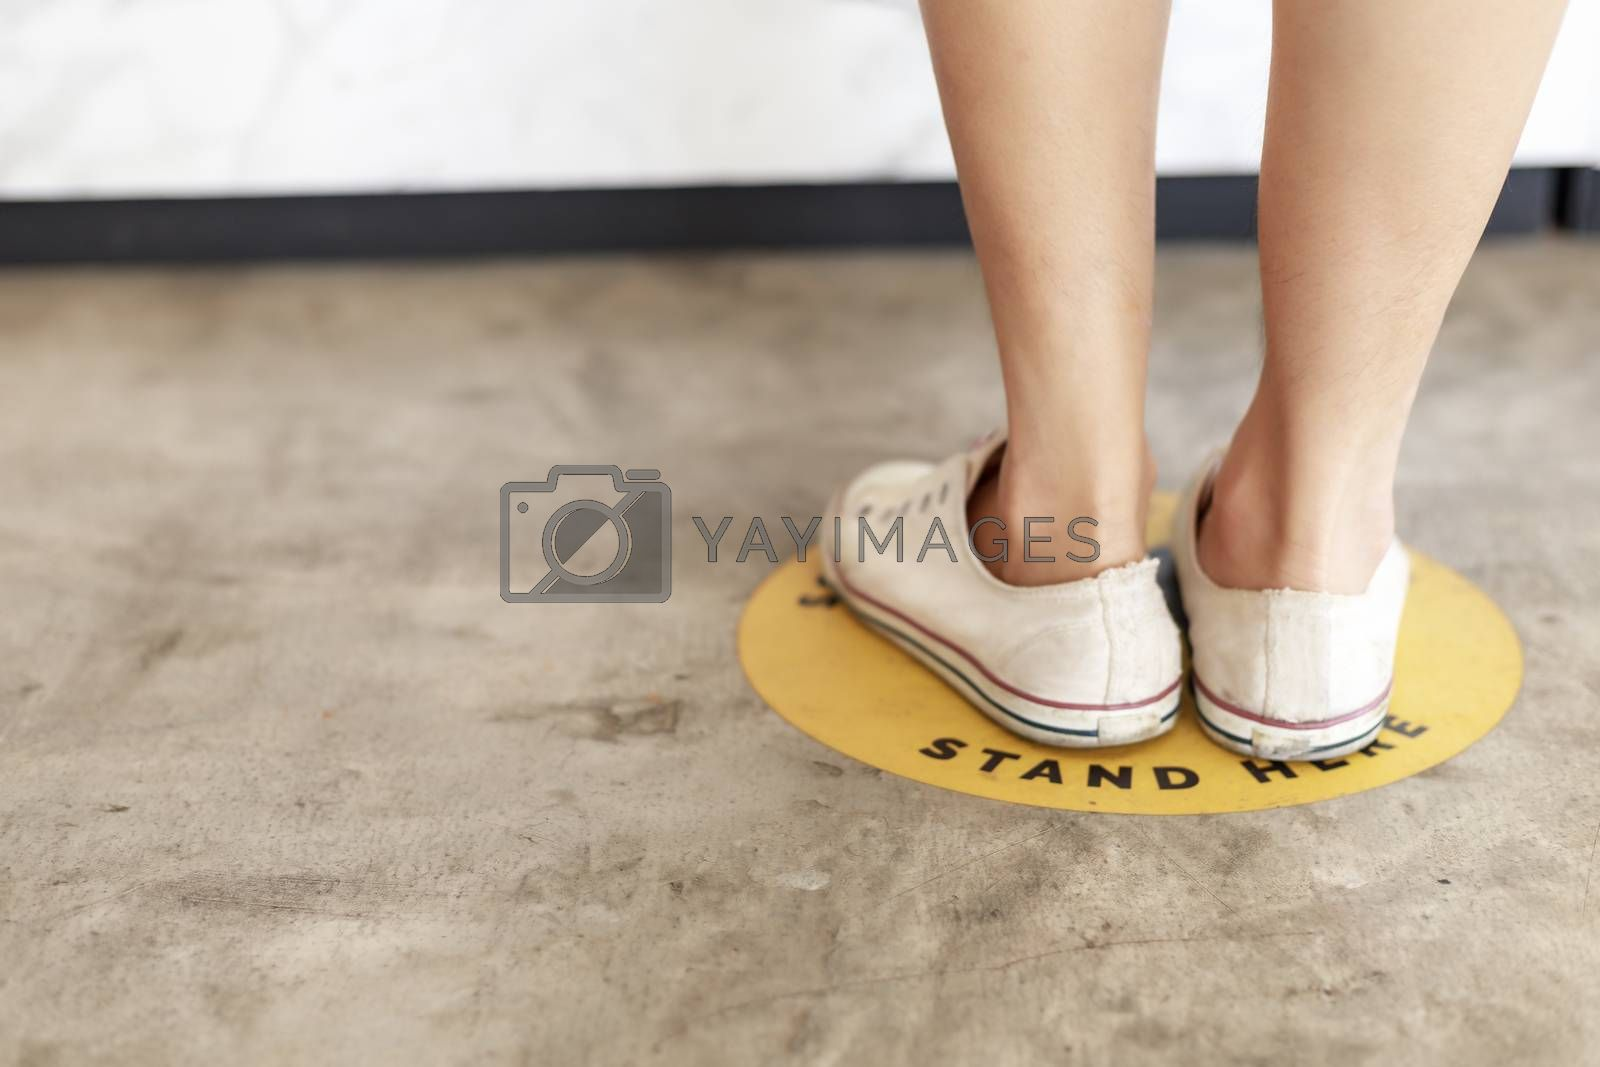 Women leg wear sneaker stand on footprint sign for stand in shopping mall, supermarket. Social distancing , COVID-19 comcept. Ccoronavirus crisis. yellow footprint sign with text caution social distance.